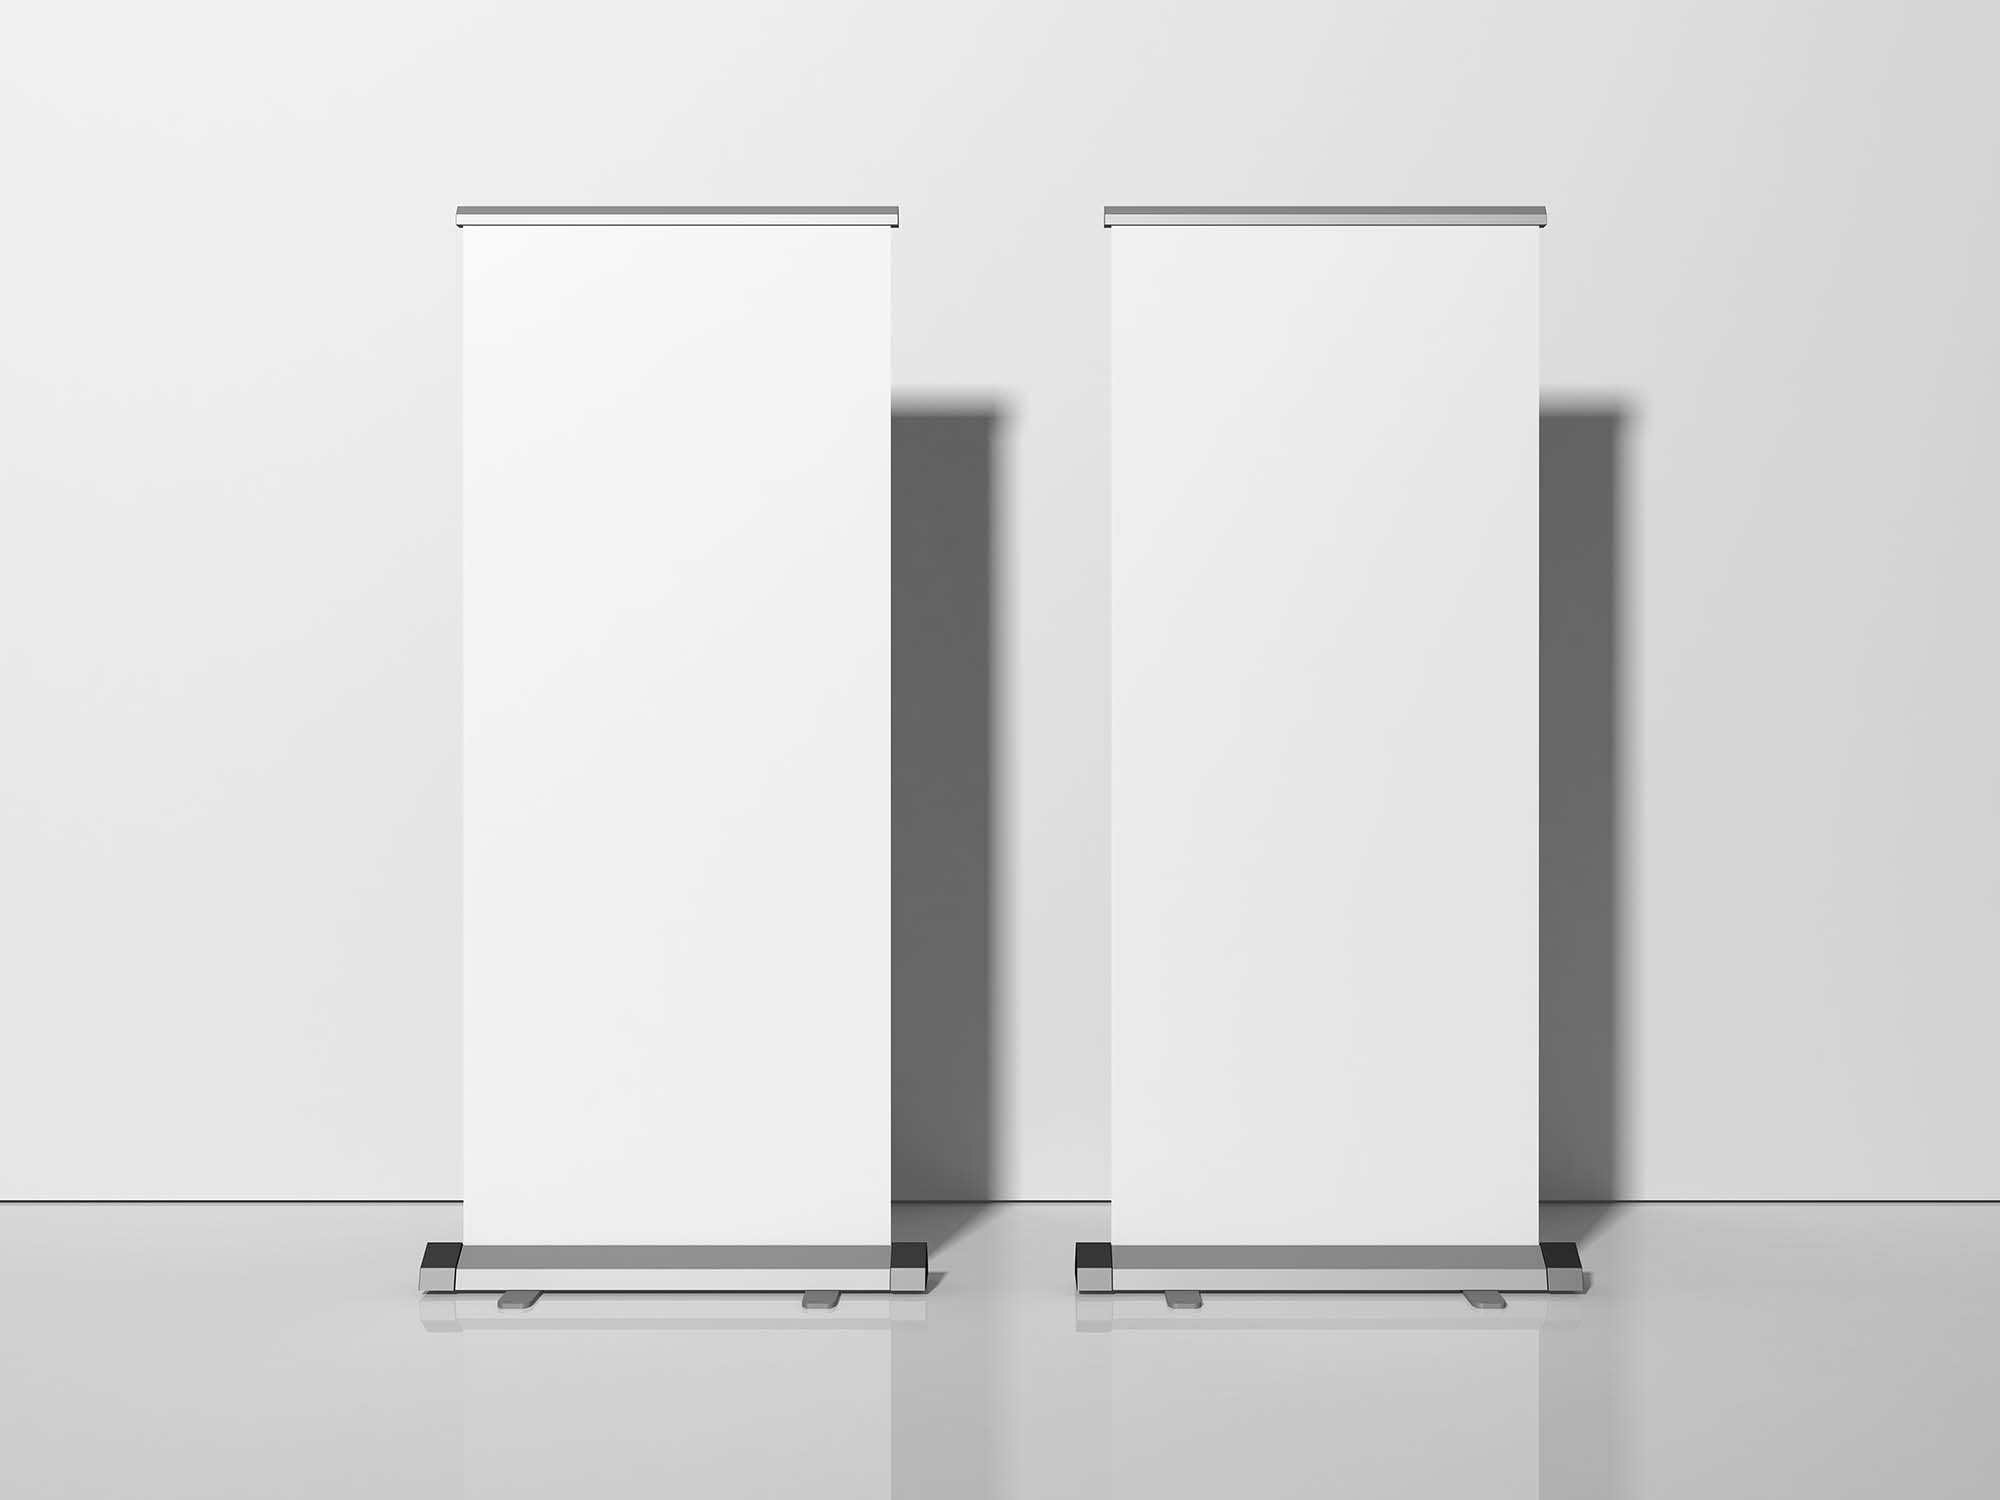 Exhibition Stand Roll-Up Banner Mockup 3